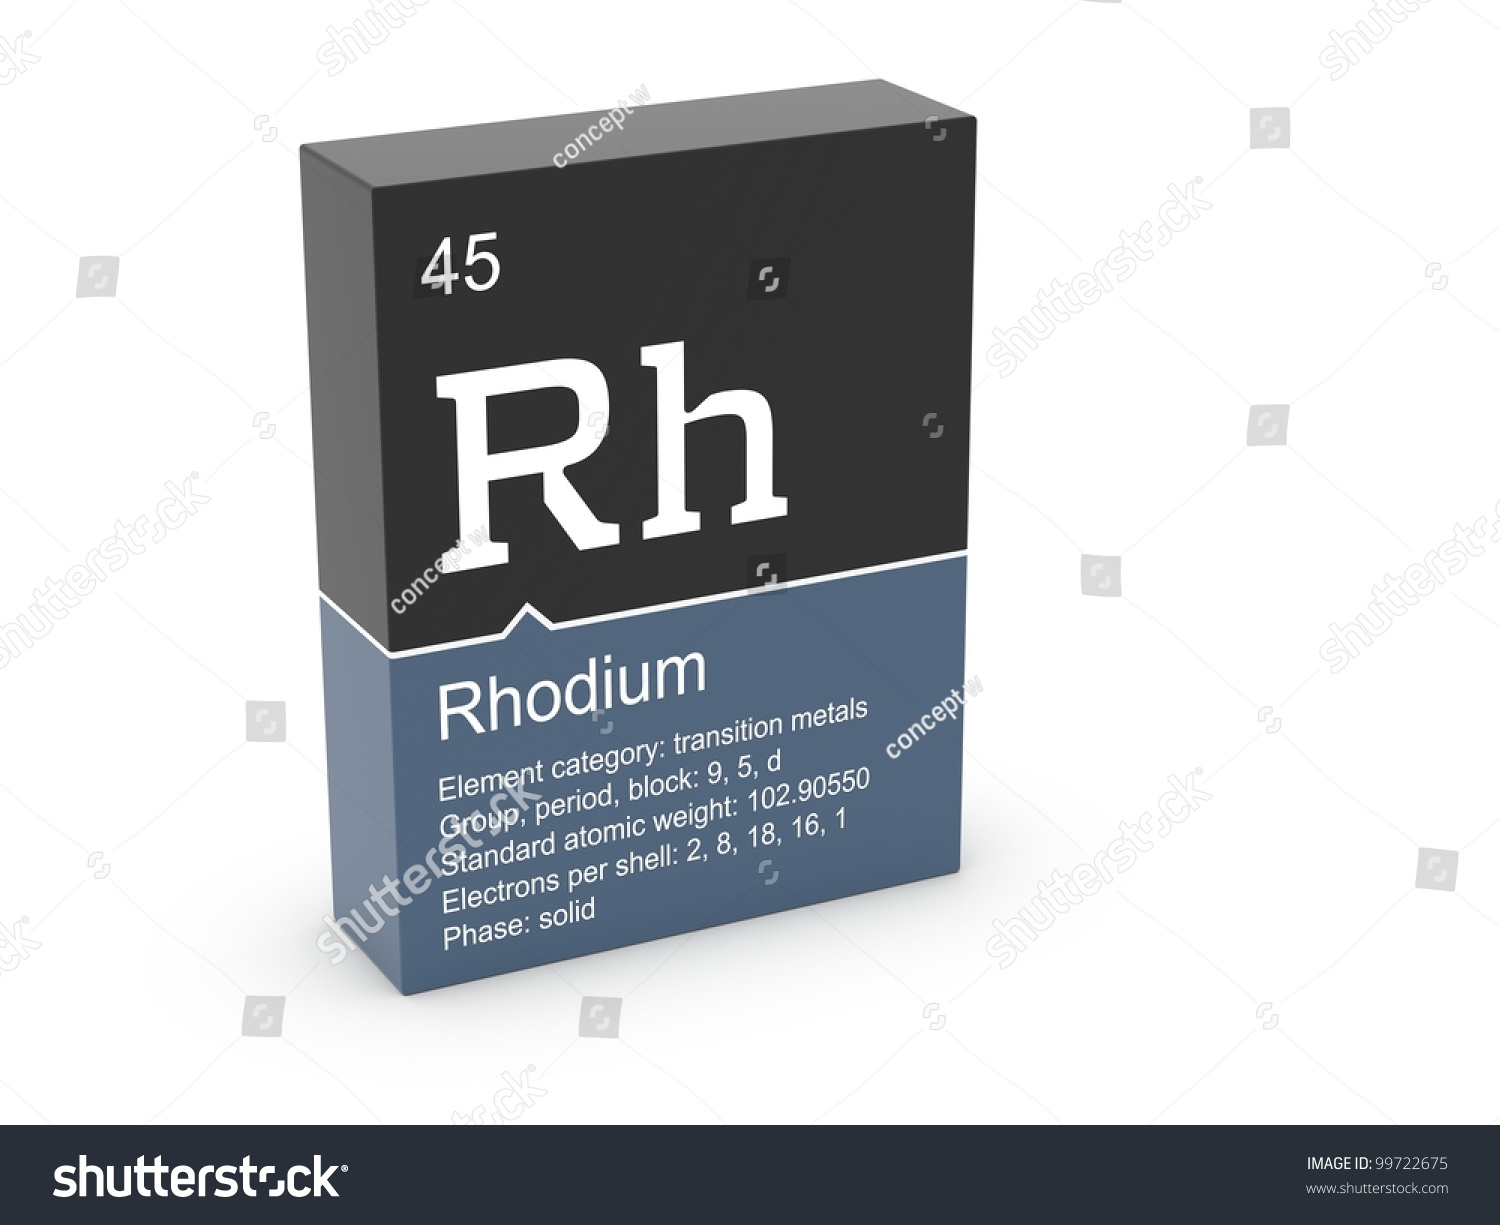 Rhodium mendeleevs periodic table stock illustration 99722675 rhodium from mendeleevs periodic table gamestrikefo Image collections